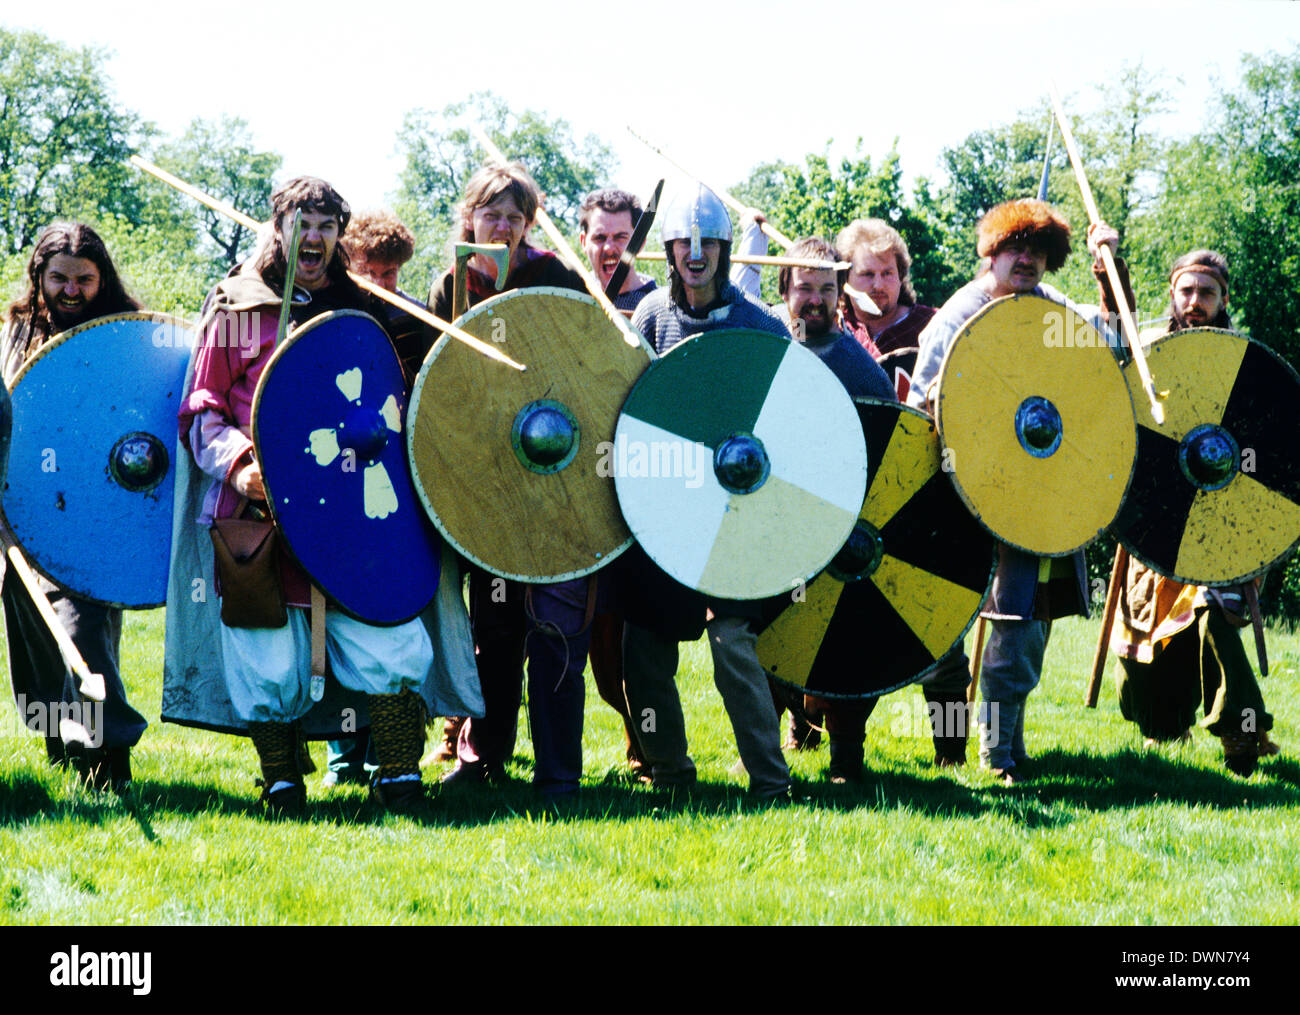 Viking Warriors, 9th century historical re-enactment, warrior soldier soldiers shields weapons England UK - Stock Image